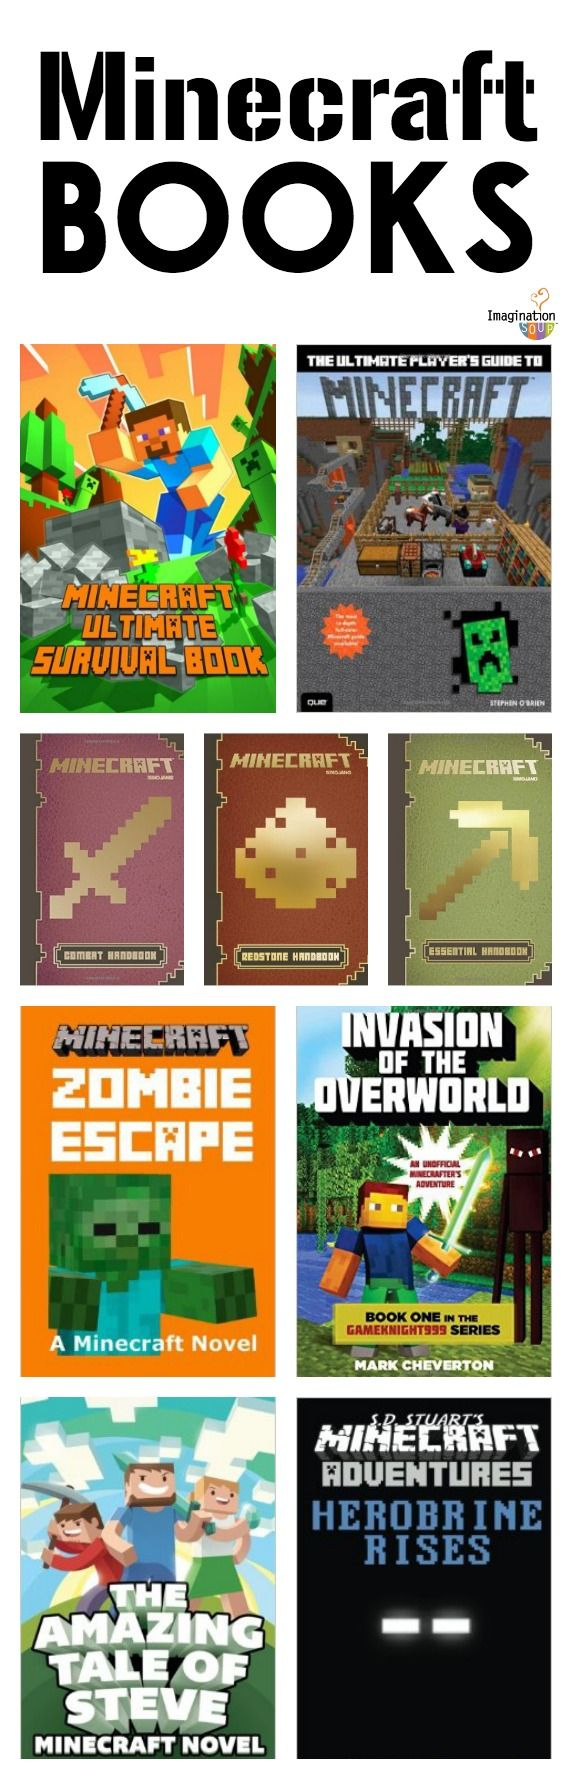 Minecraft books get kids reading!